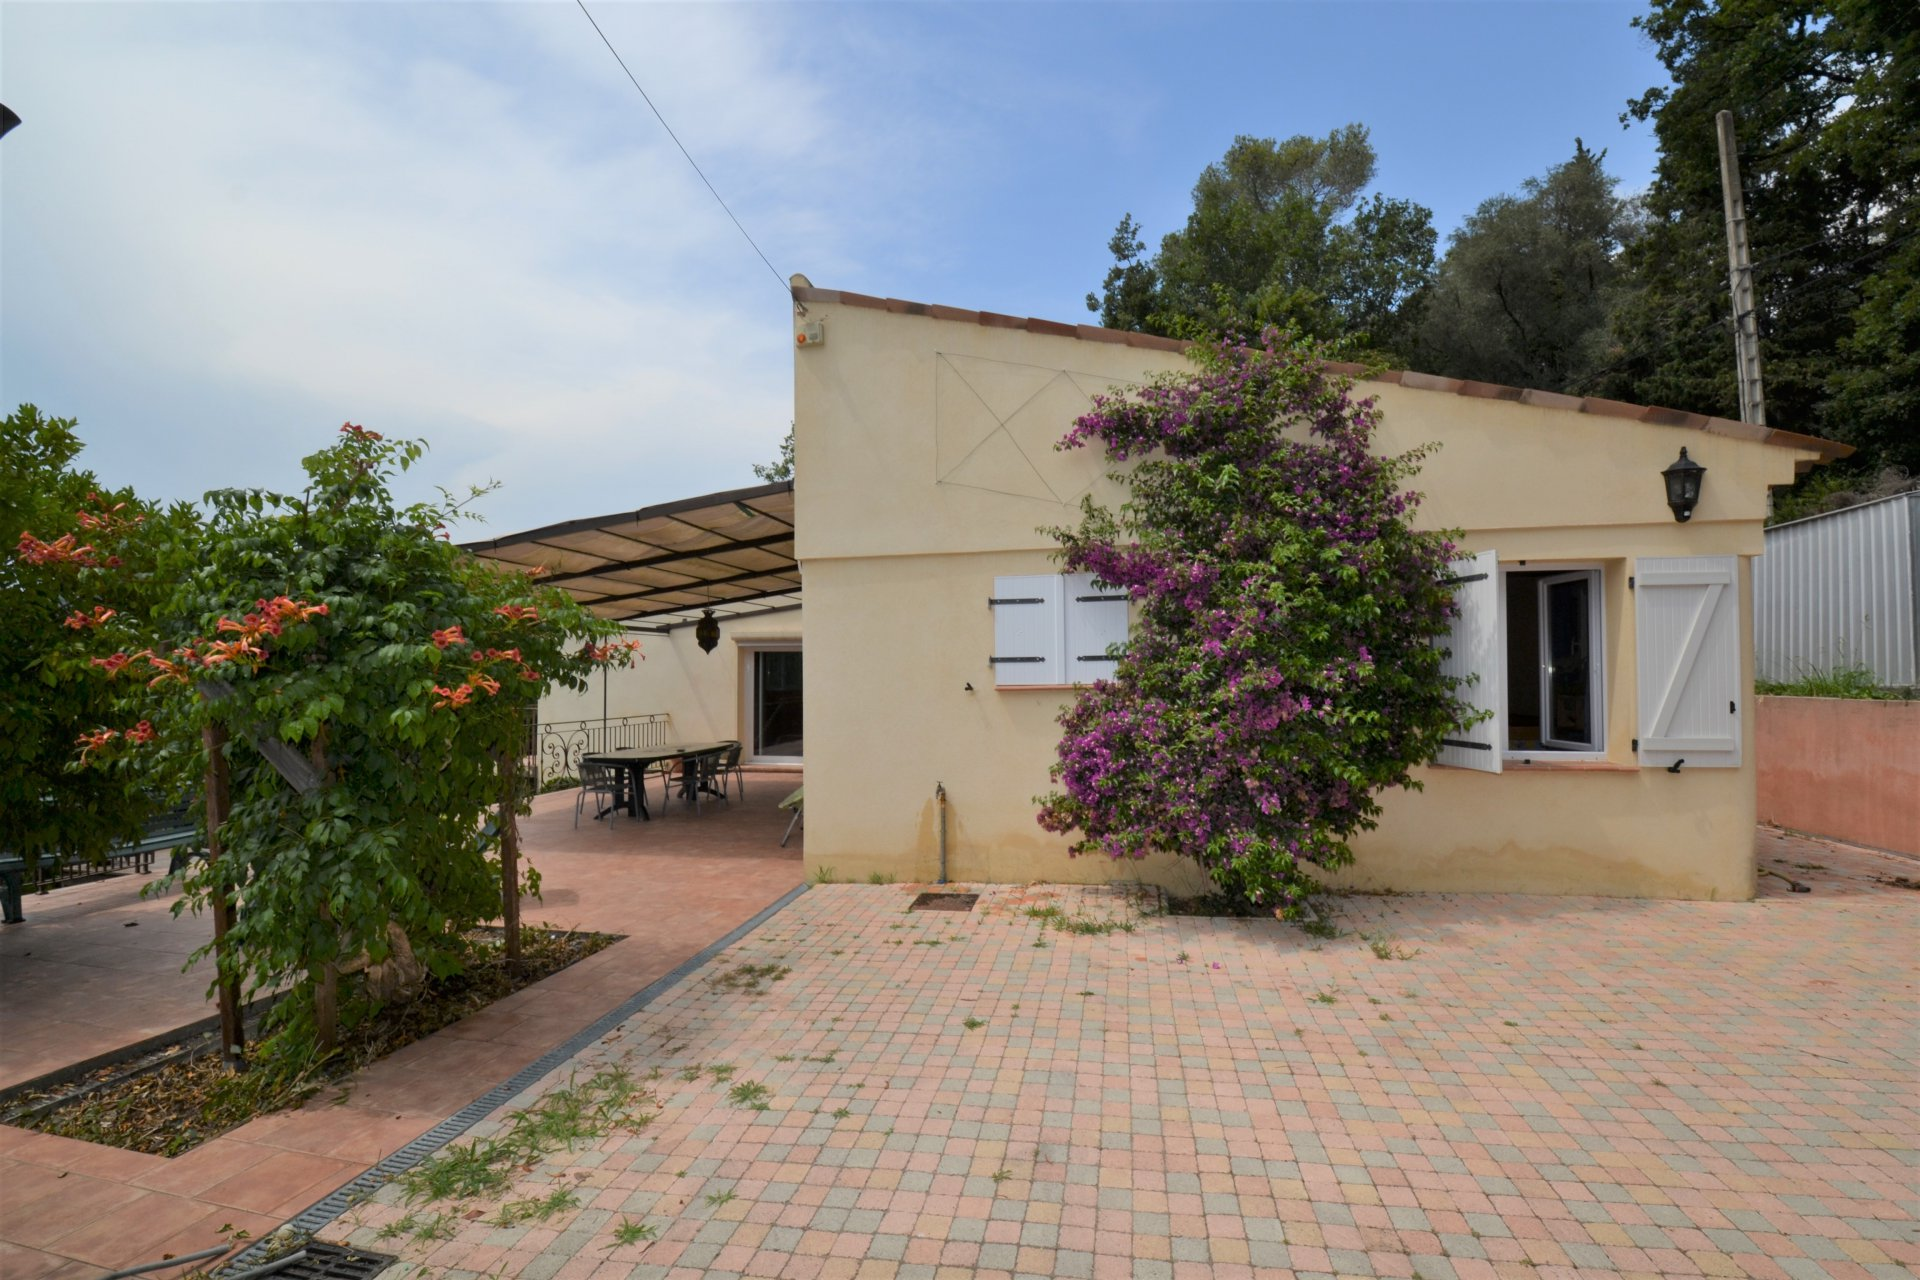 Location Villa - Biot Saint Julien